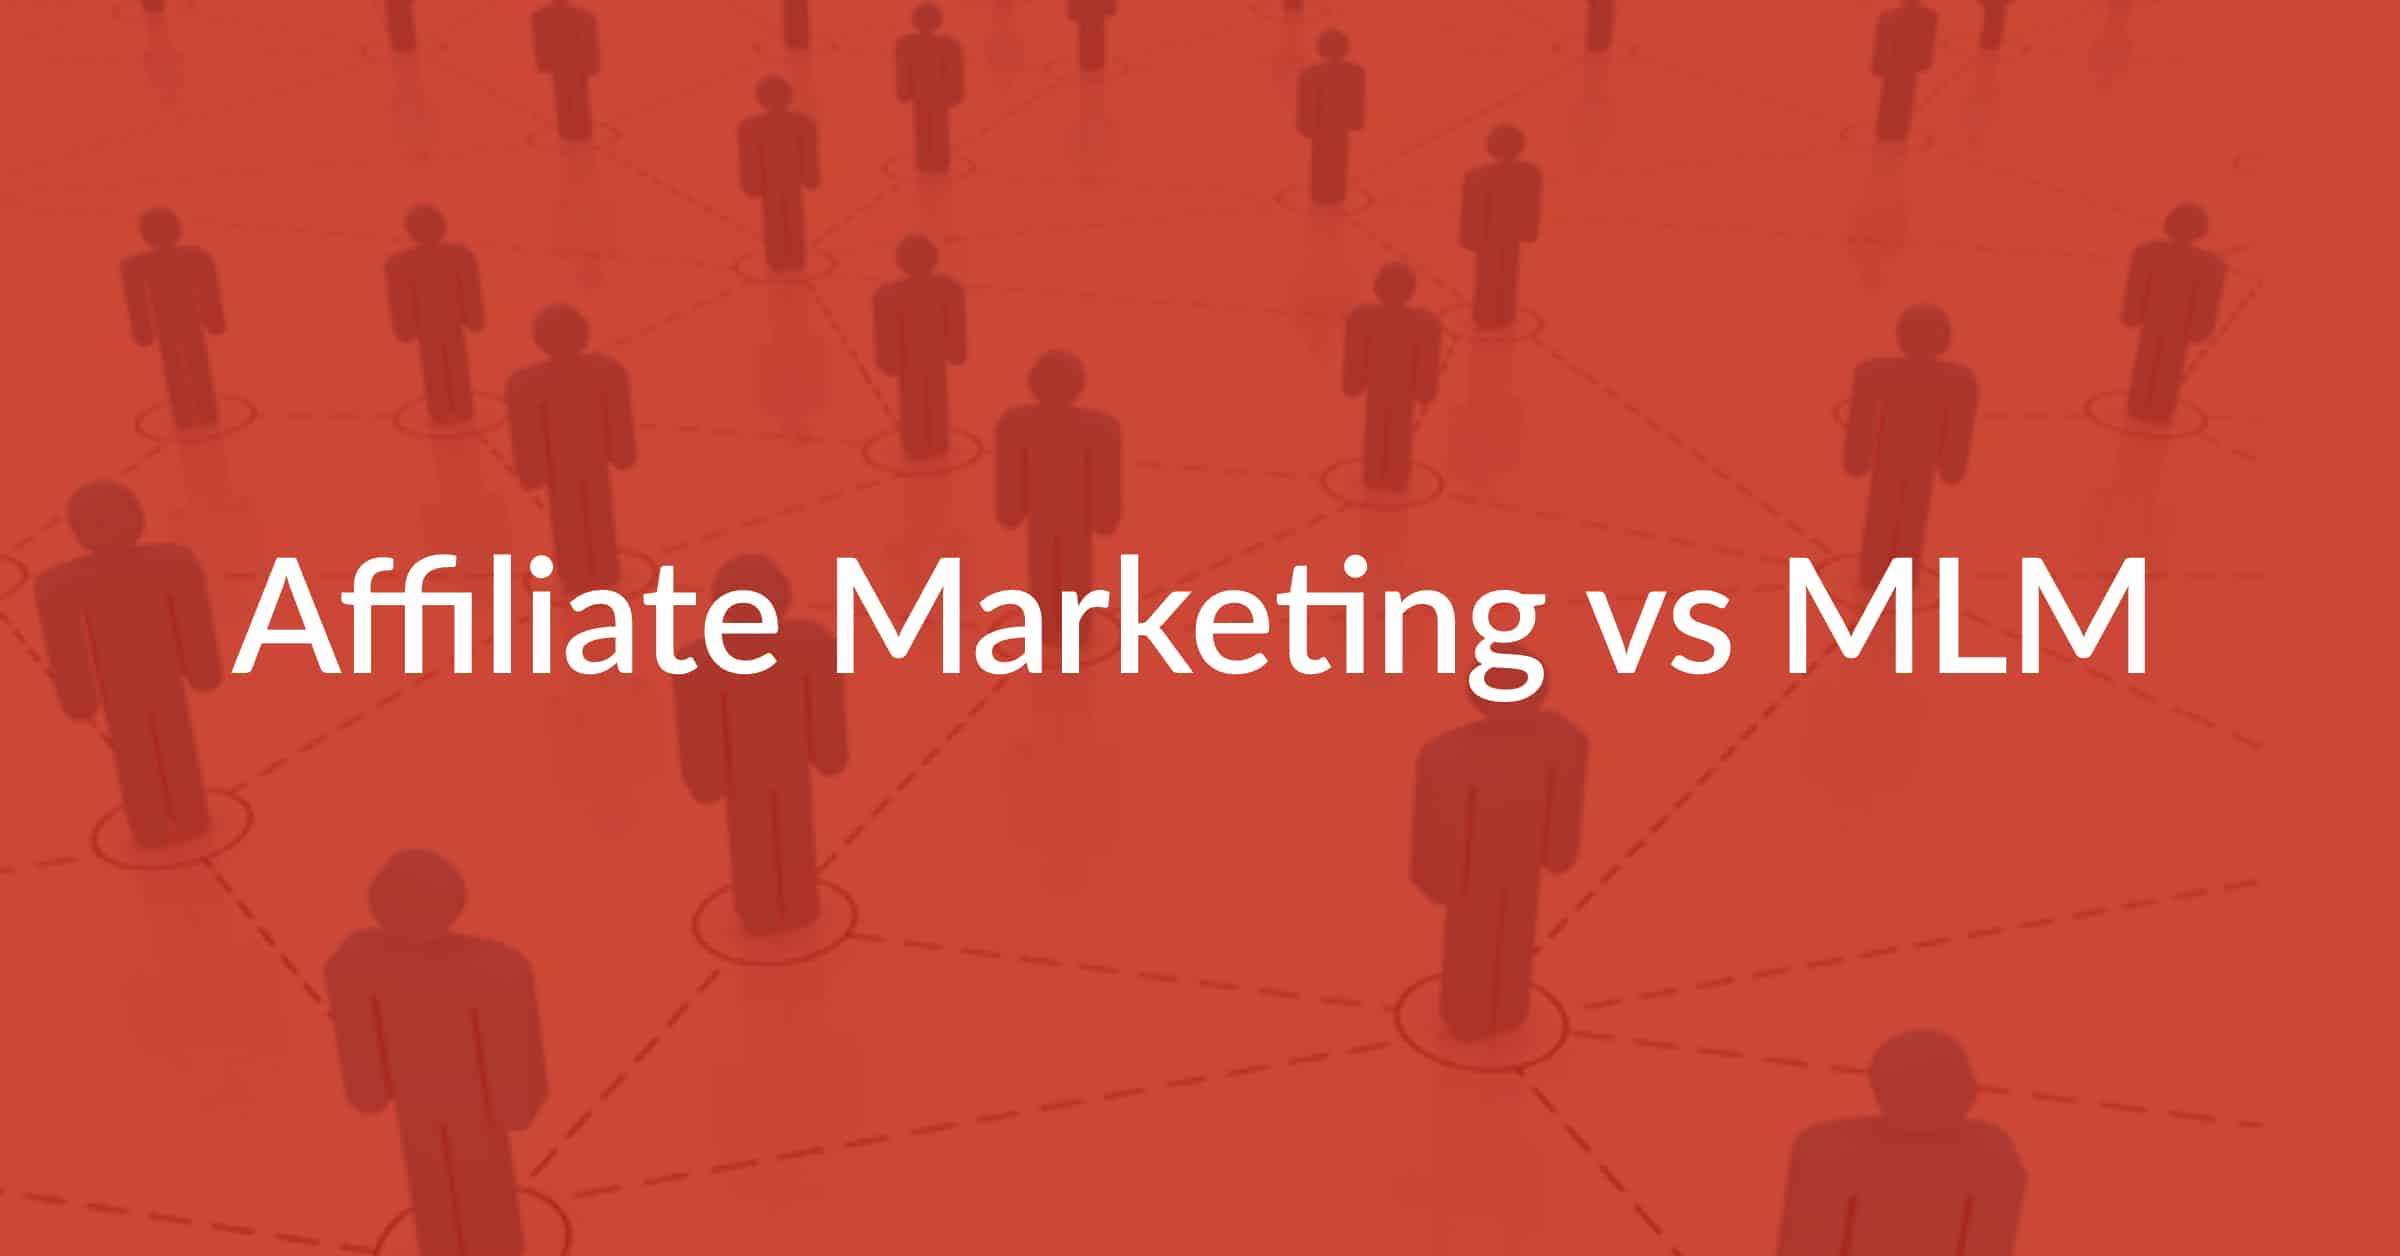 Affiliate Marketing vs Network Marketing: Which Is Better?